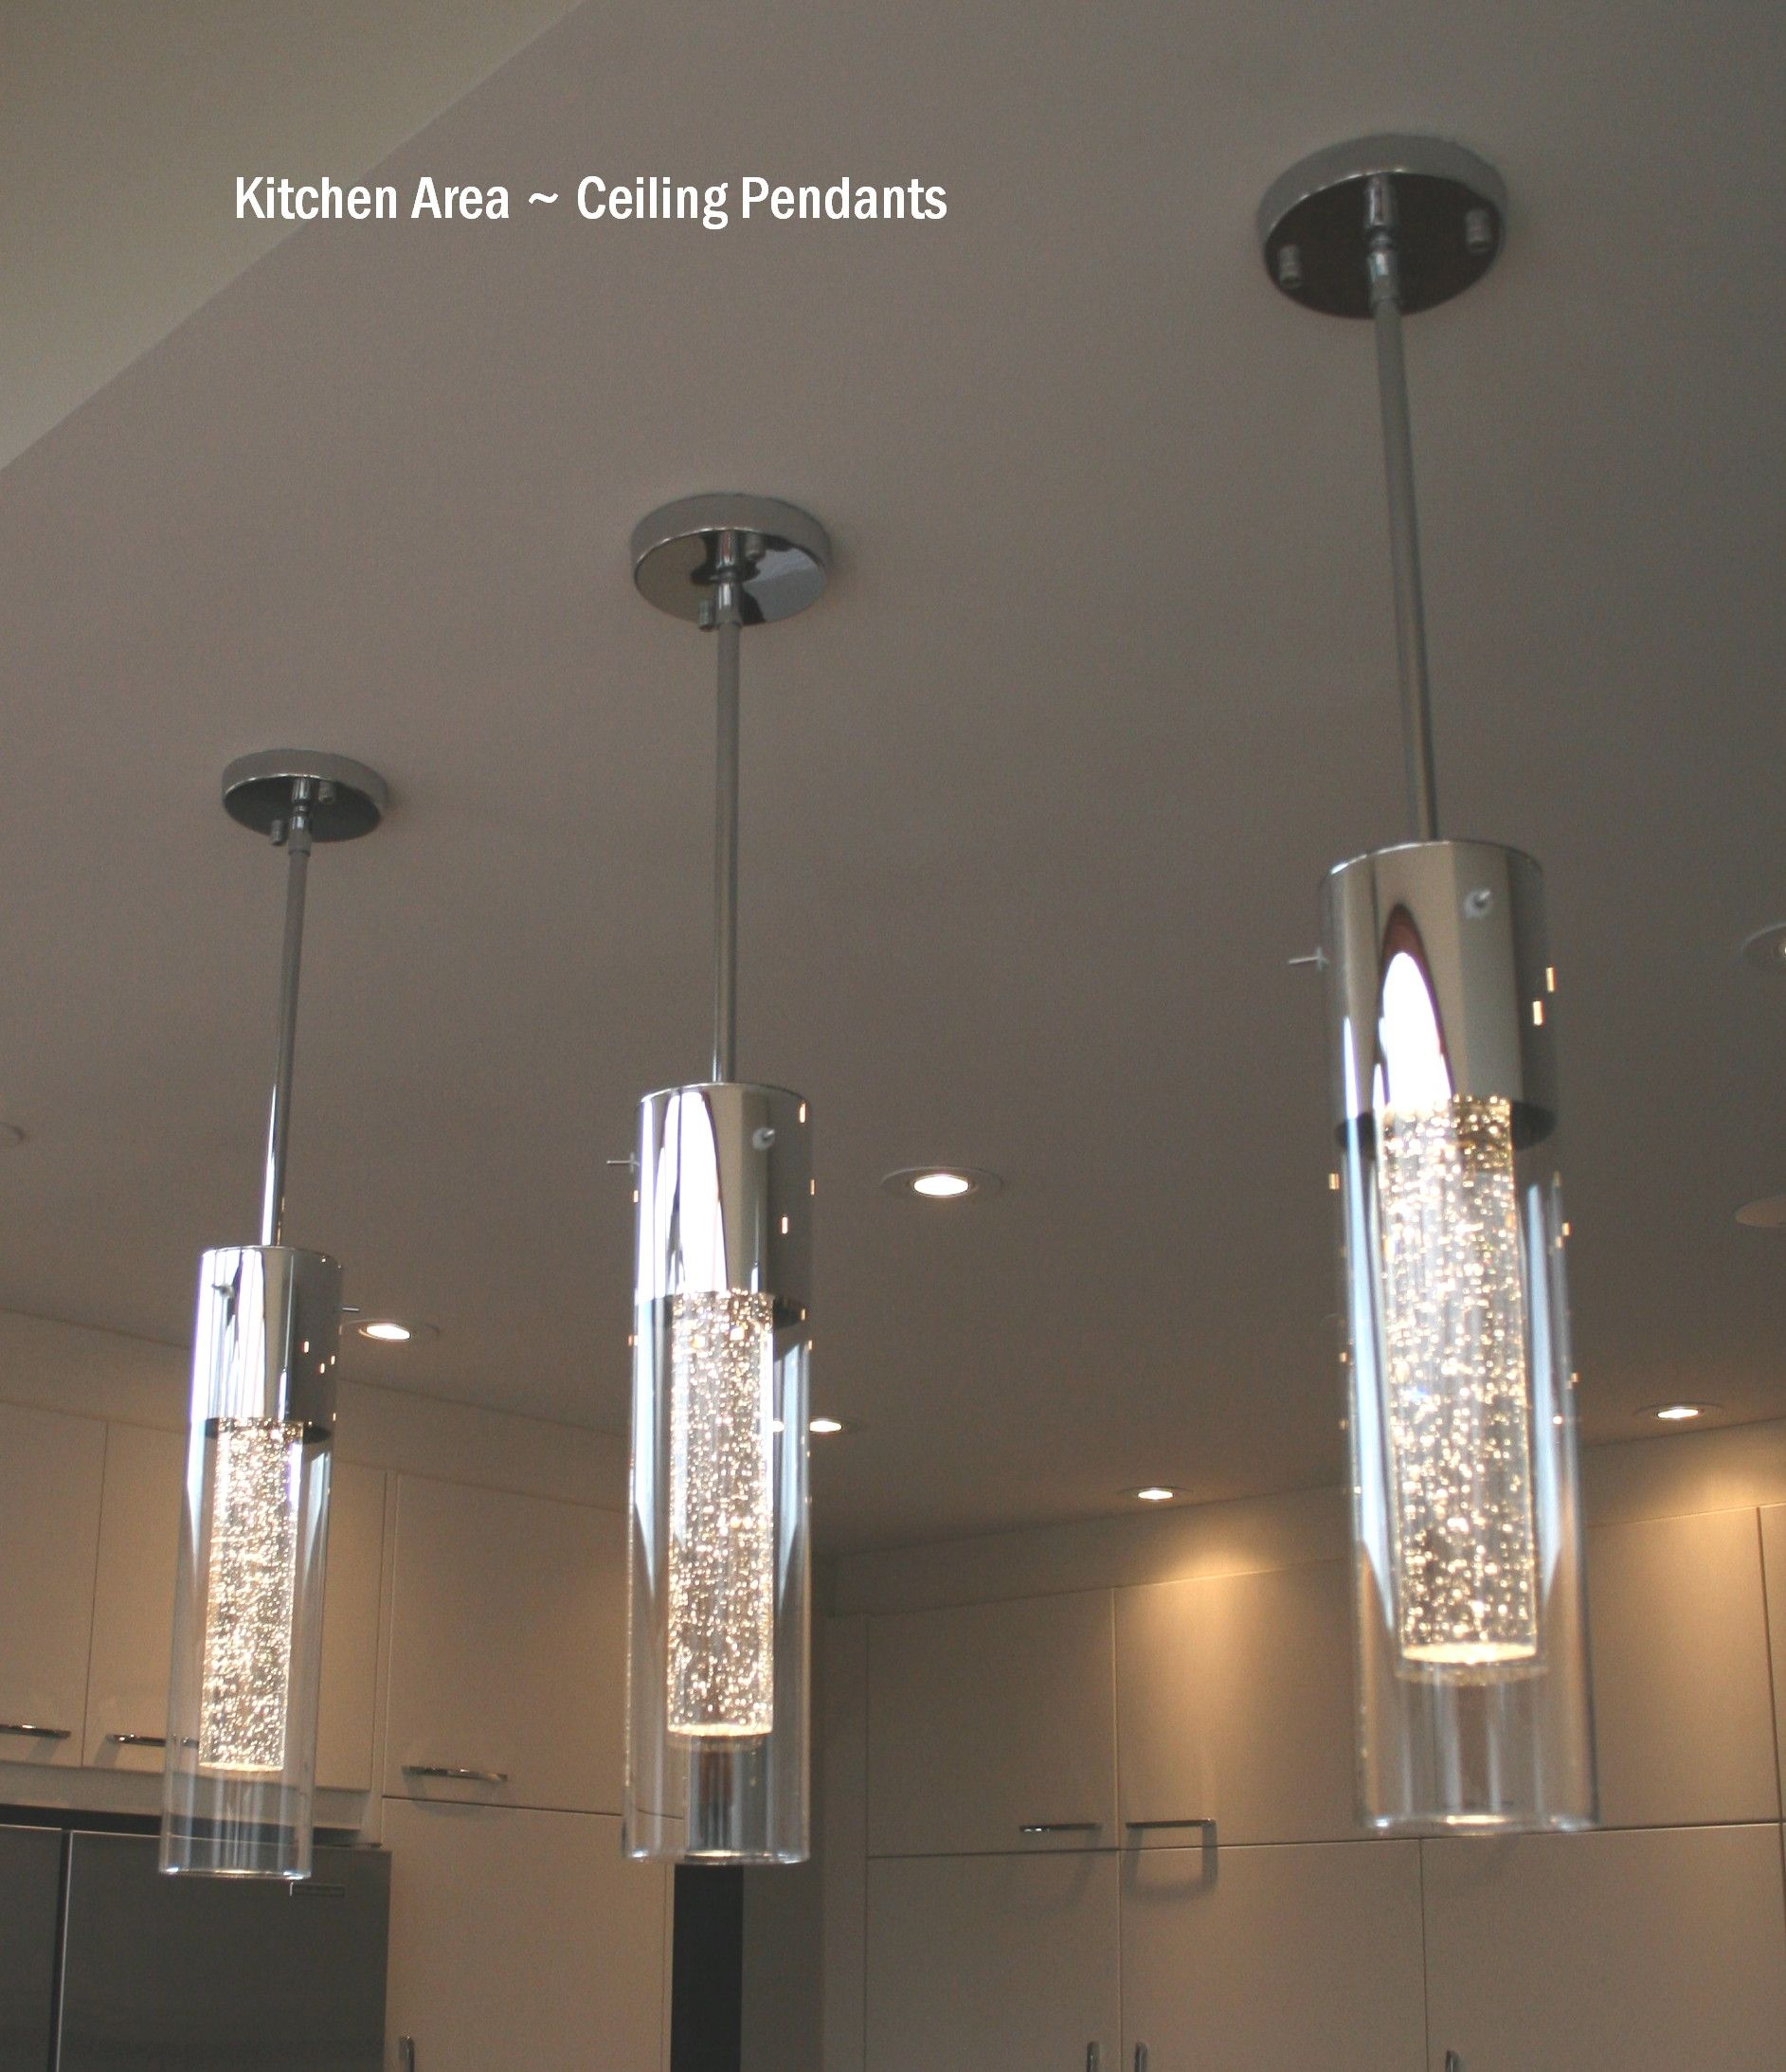 Pendant Light Fixture Tiny micro fibers encased in the crystal tube sparkles when the